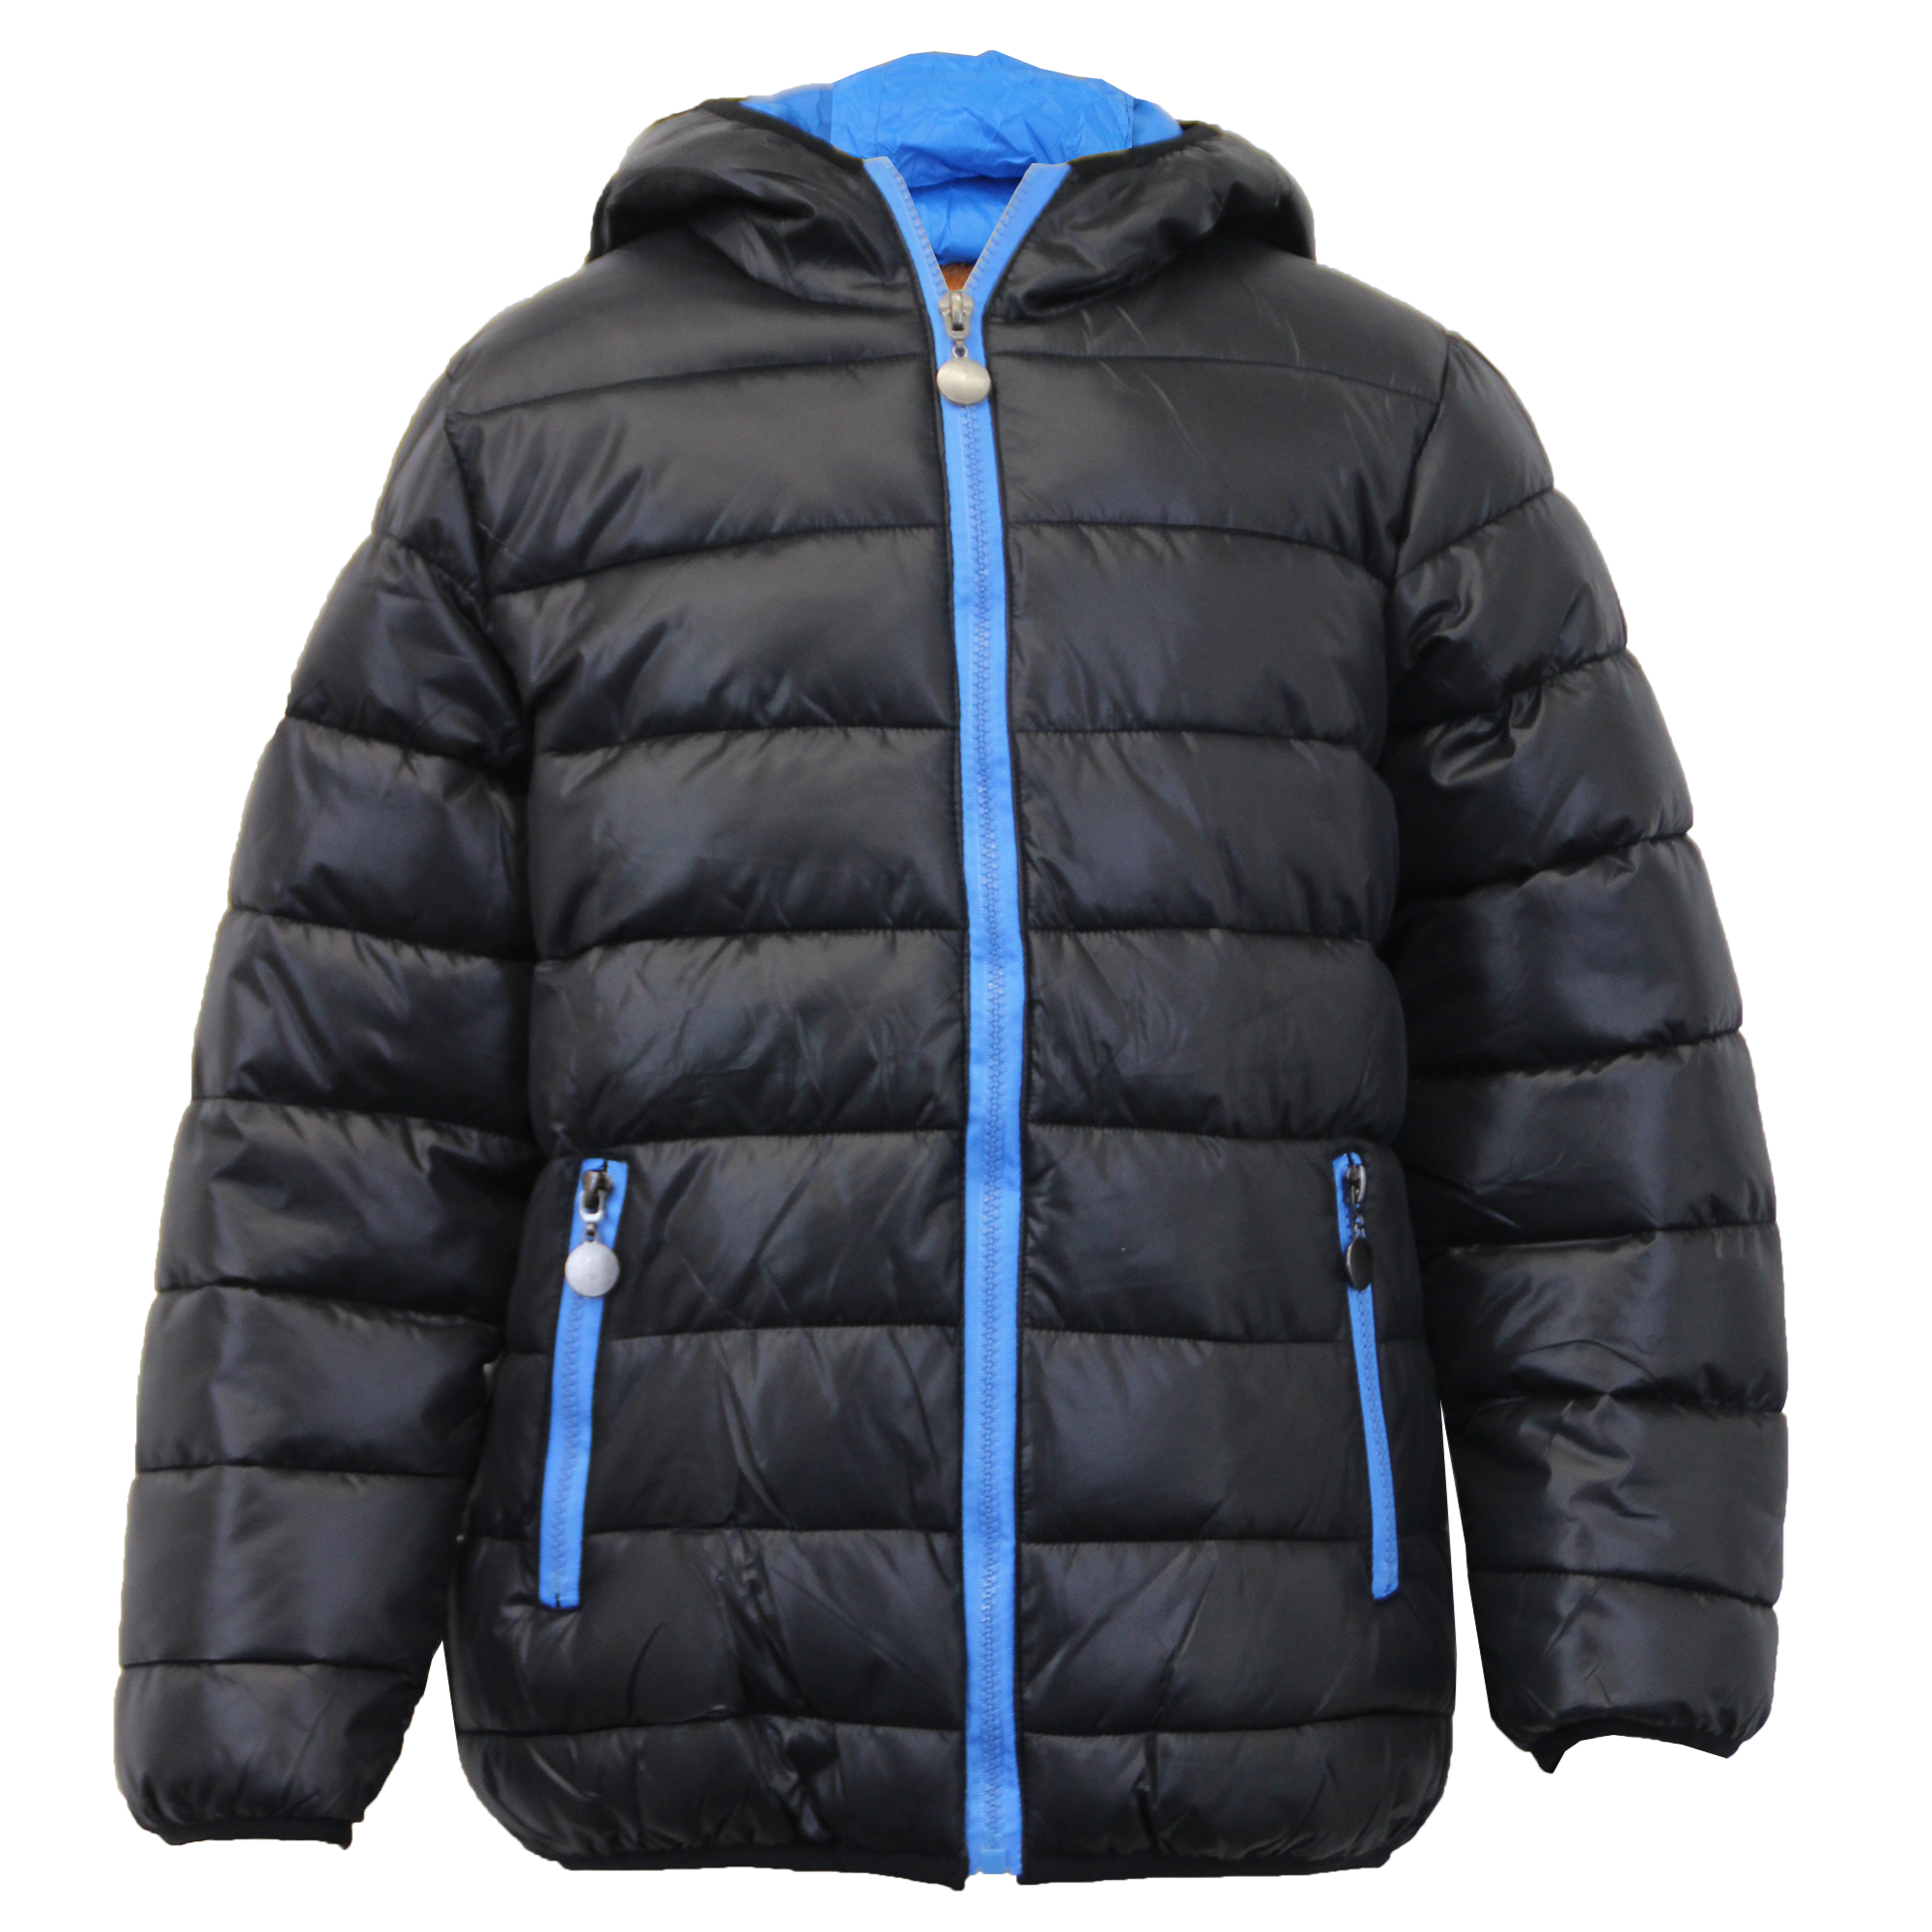 The Joules Boys' Cairn Padded Coat is nicely made, navy and red colors are true to the picture. My 4 year old loves his new coat and says it keeps him warm. I would say this coat is good for weather with a little rain or light snow/5(6).